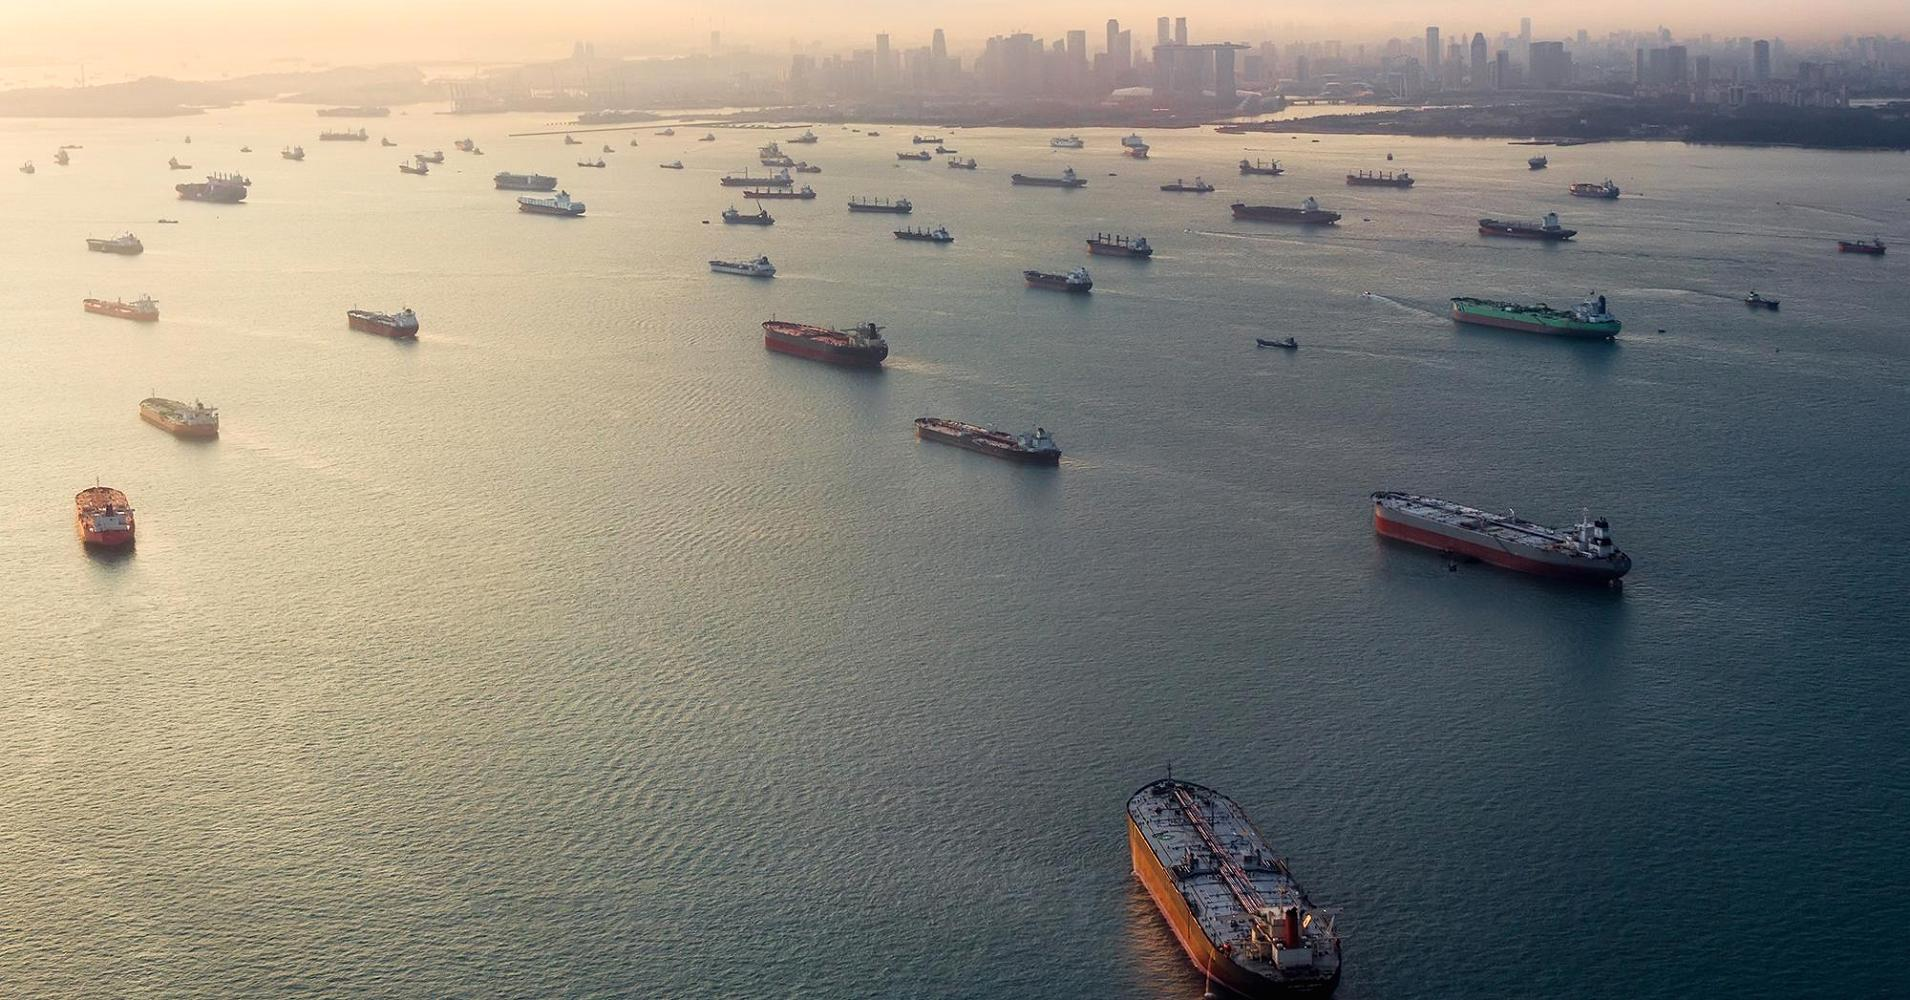 Andrew Rowat | The Image Bank | Getty Images Cargo ships sit idle in the Singapore